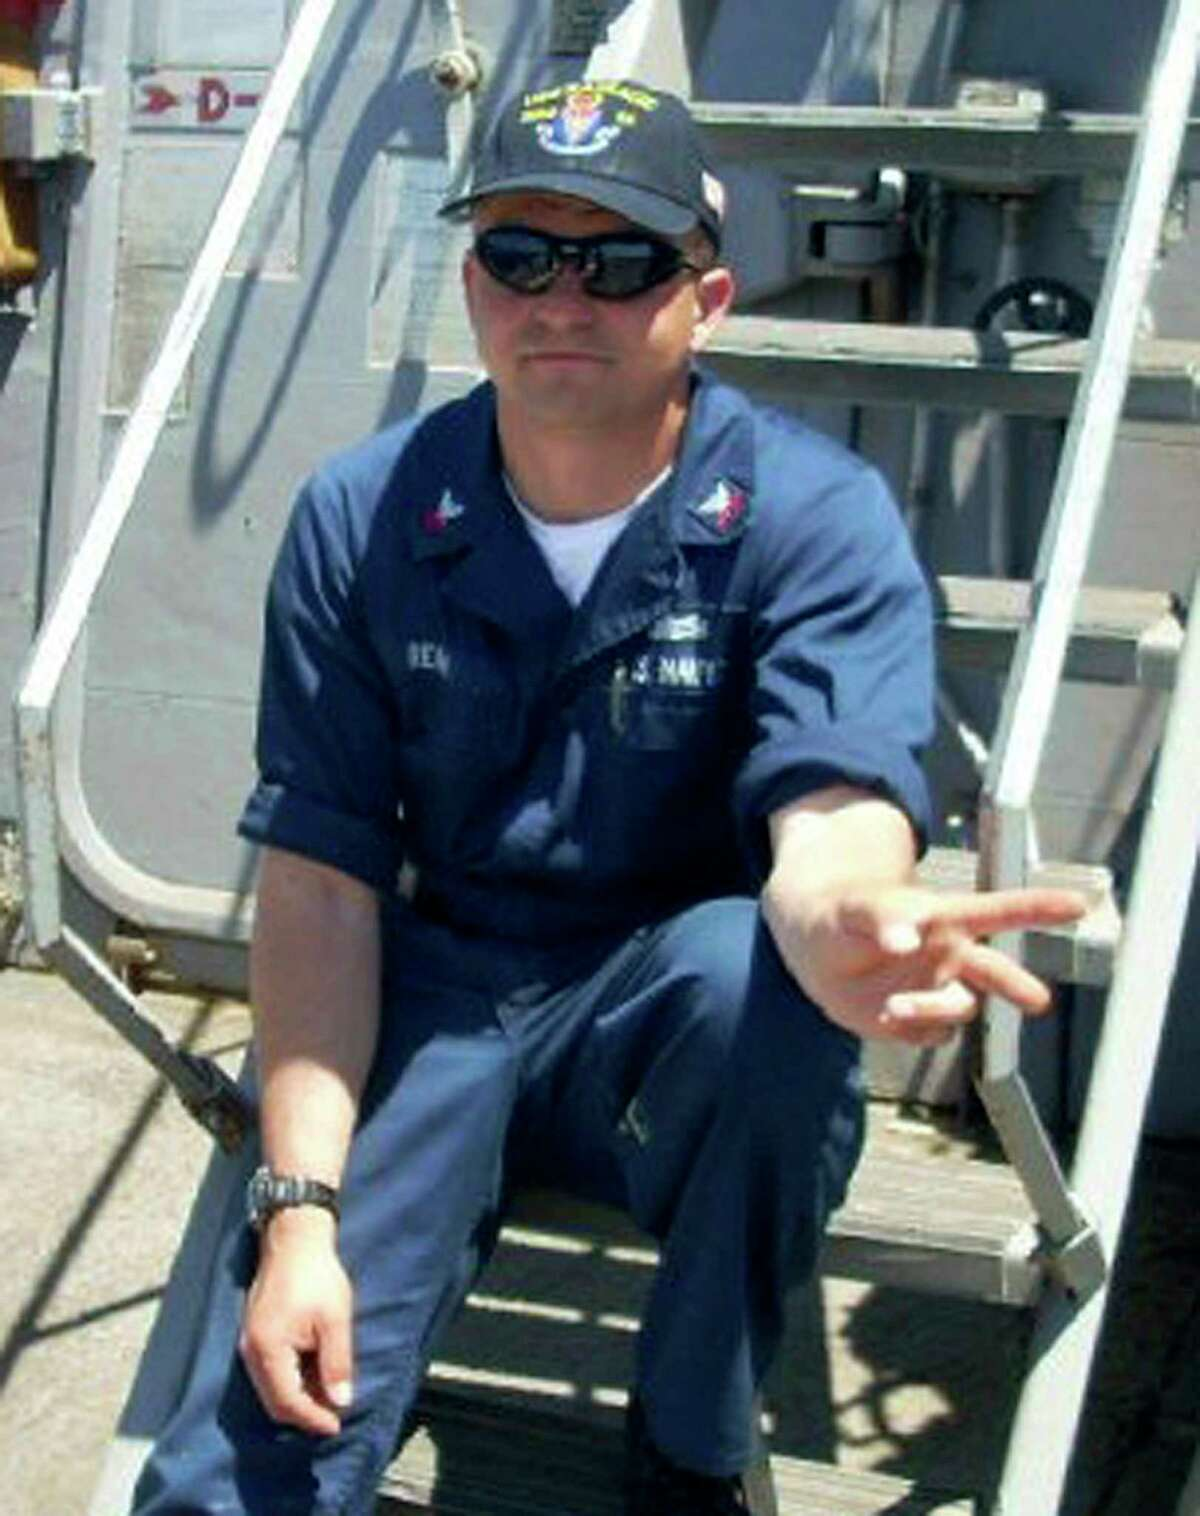 This undated photo released by the U.S. Navy, Monday, June 19, 2017, shows Fire Controlman 1st Class Gary Leo Rehm Jr., 37, from Elyria, Ohio. Rehm is one of the seven sailors who died in a collision between the USS Fitzgerald and a container ship off Japan on Saturday, June 17, 2017. (U.S. Navy via AP)